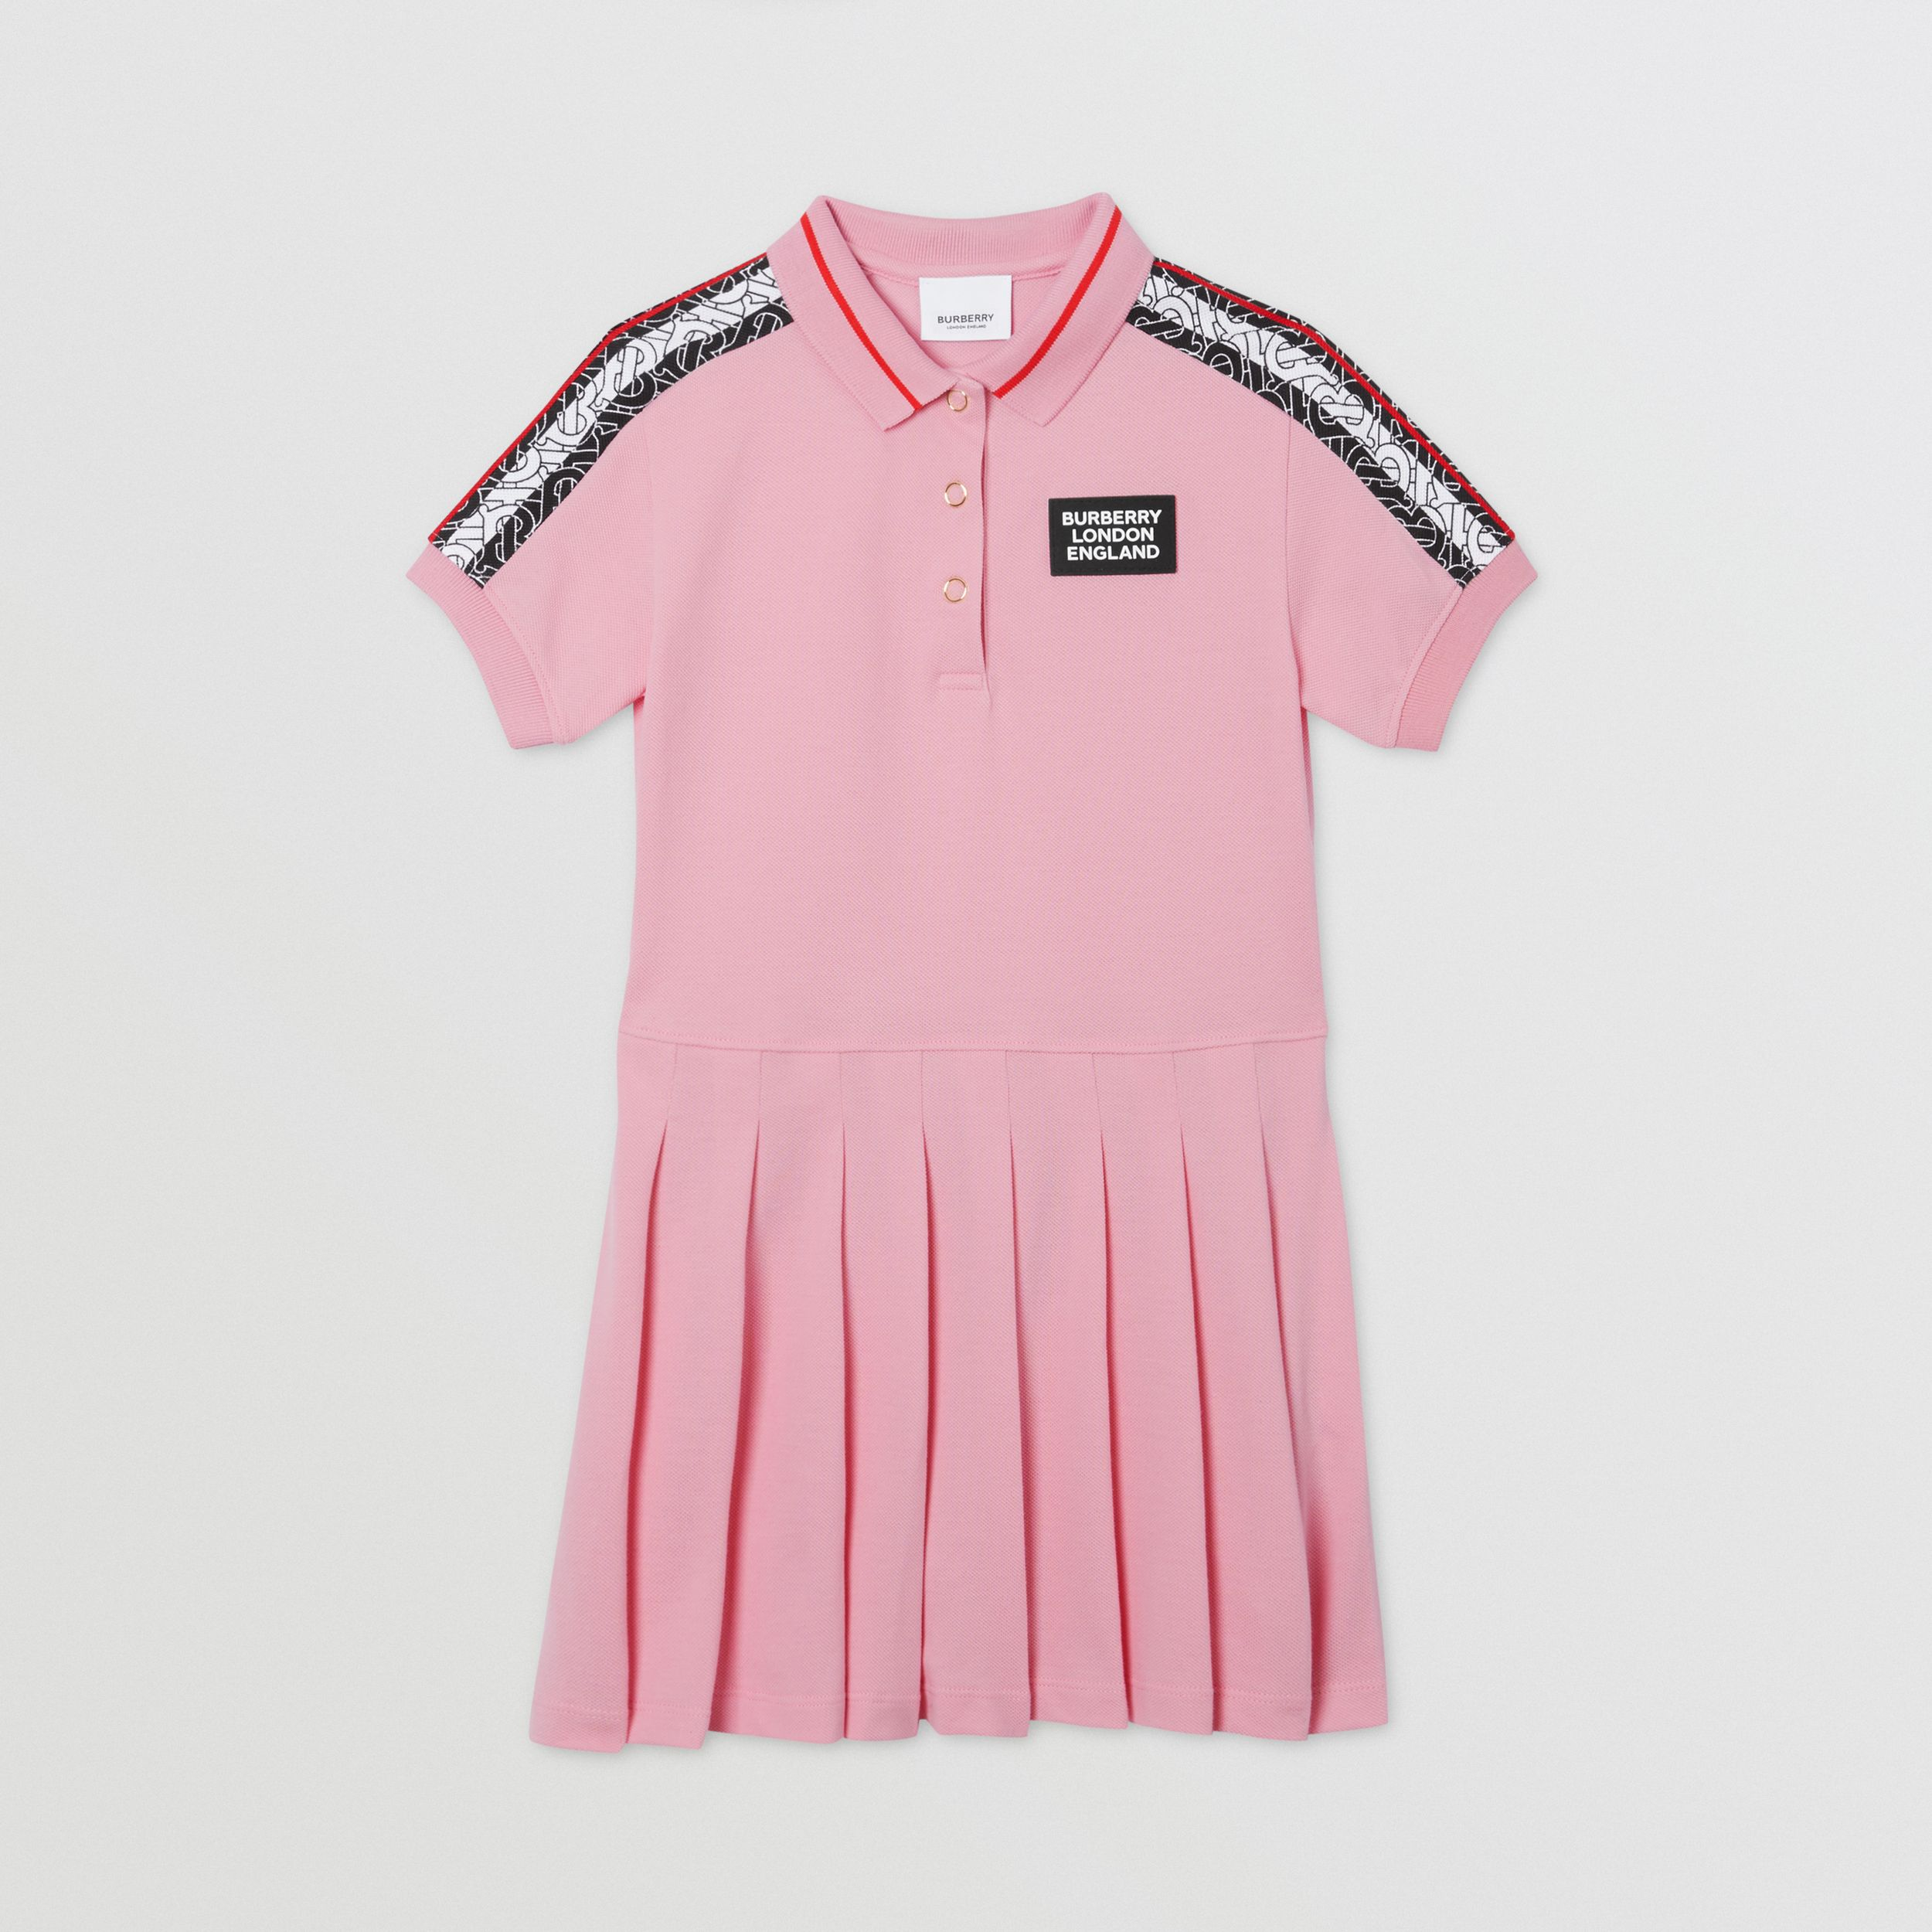 Monogram Stripe Print Cotton Piqué Polo Shirt Dress in Candy Pink | Burberry Canada - 1